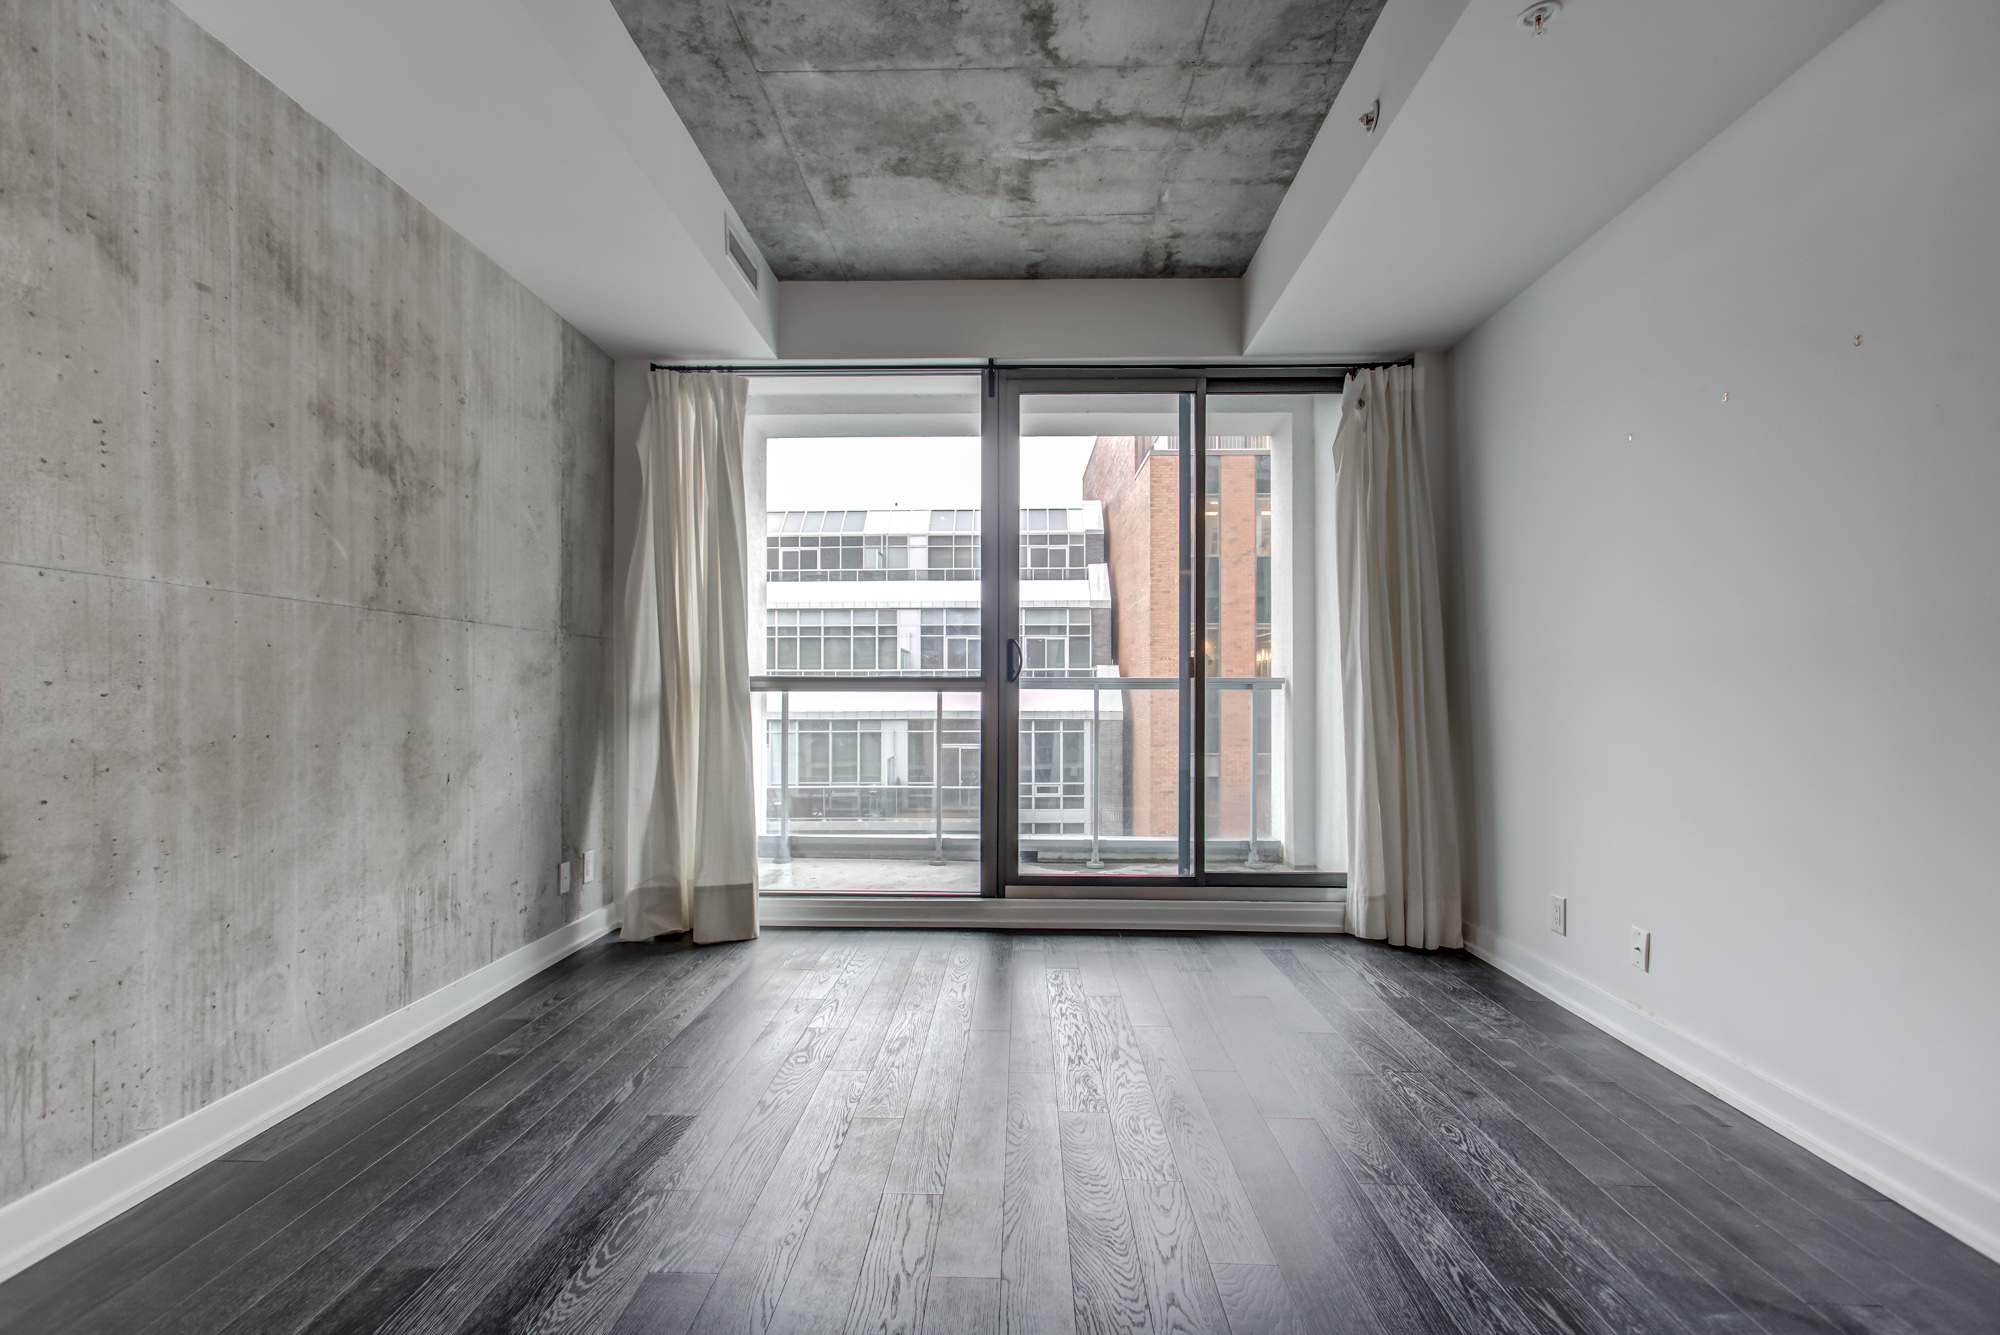 Industrial-style loft with unfinished wall and ceiling on 39 Brant St Unit 918 in Queen West, Brant Park Lofts.